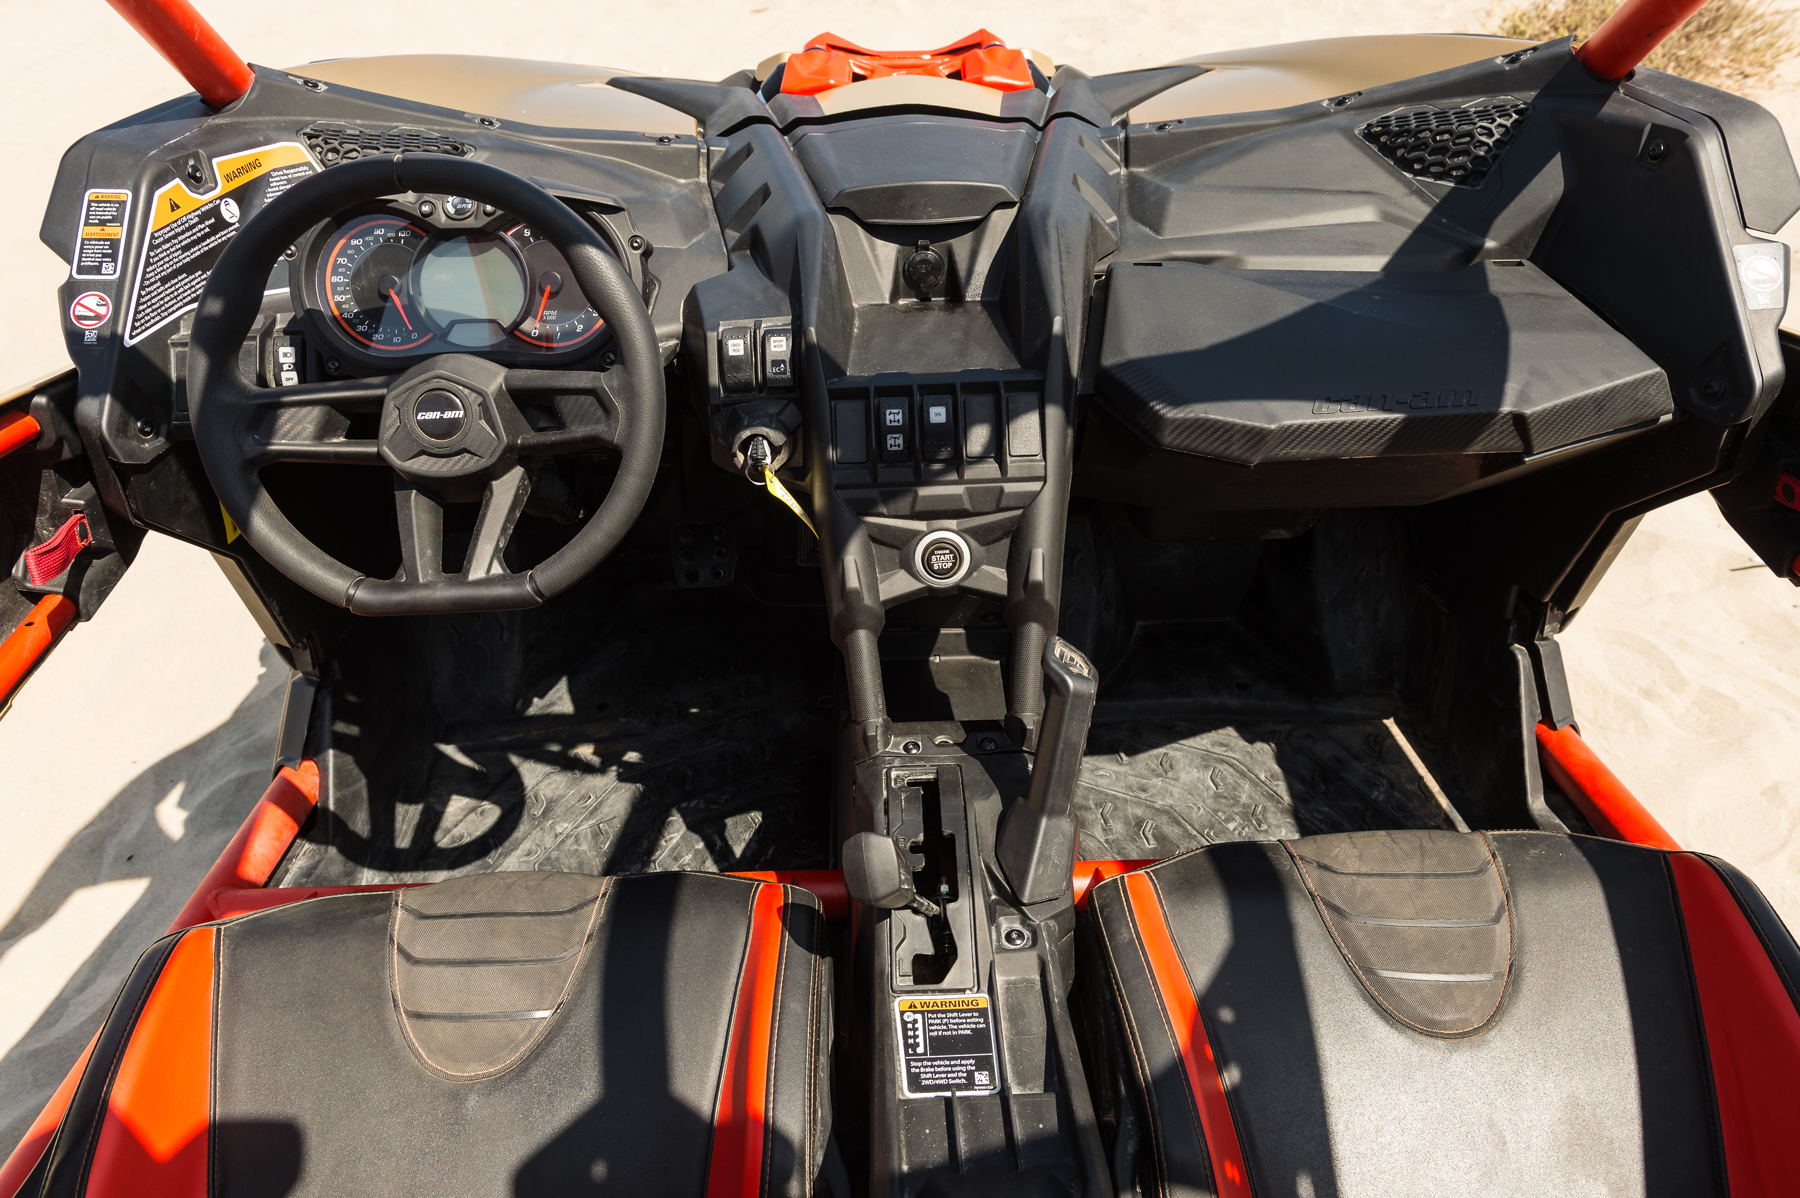 2017 Can-Am Maverick X3 X rs Turbo Cockpit